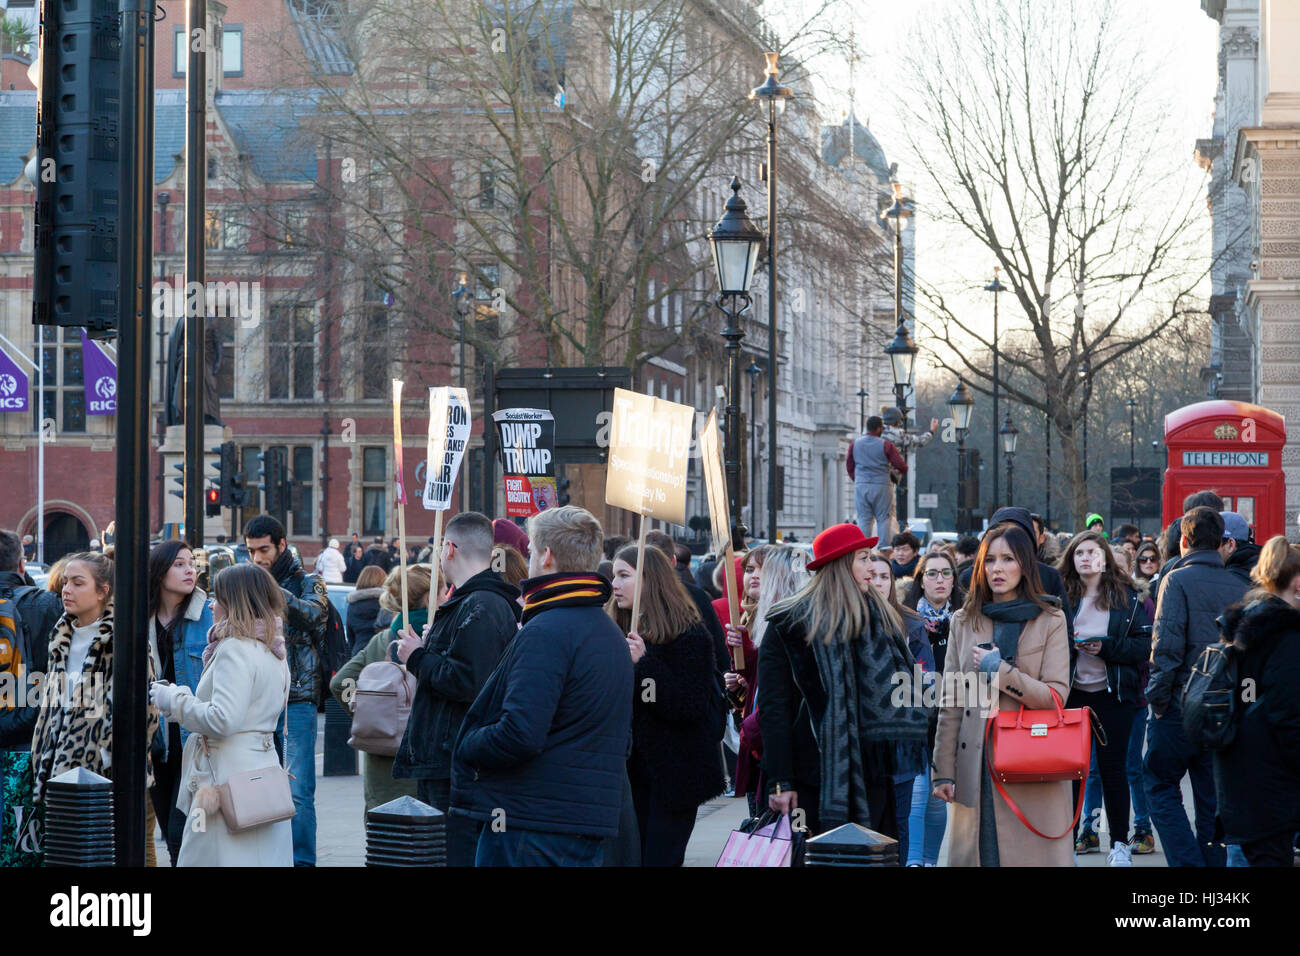 Demonstrators in London on January 21st, protesting against the inauguration  of Donald Trump as US President. Stock Photo